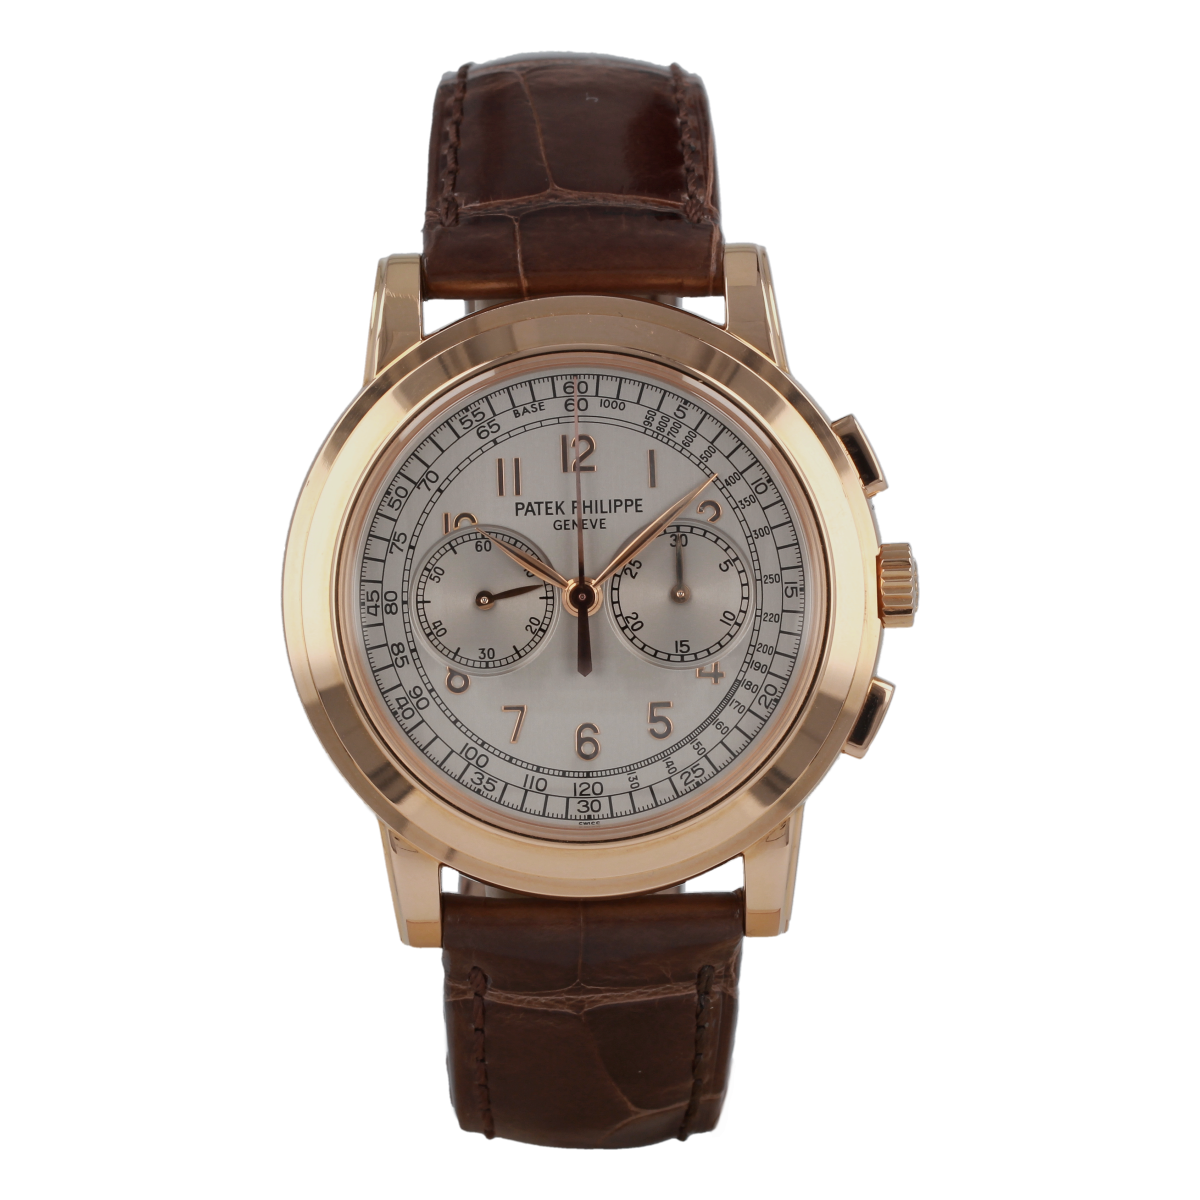 Patek Philippe Complications 5070R Chronograph *Full Set* | Buy pre-owned Patek Philippe watch